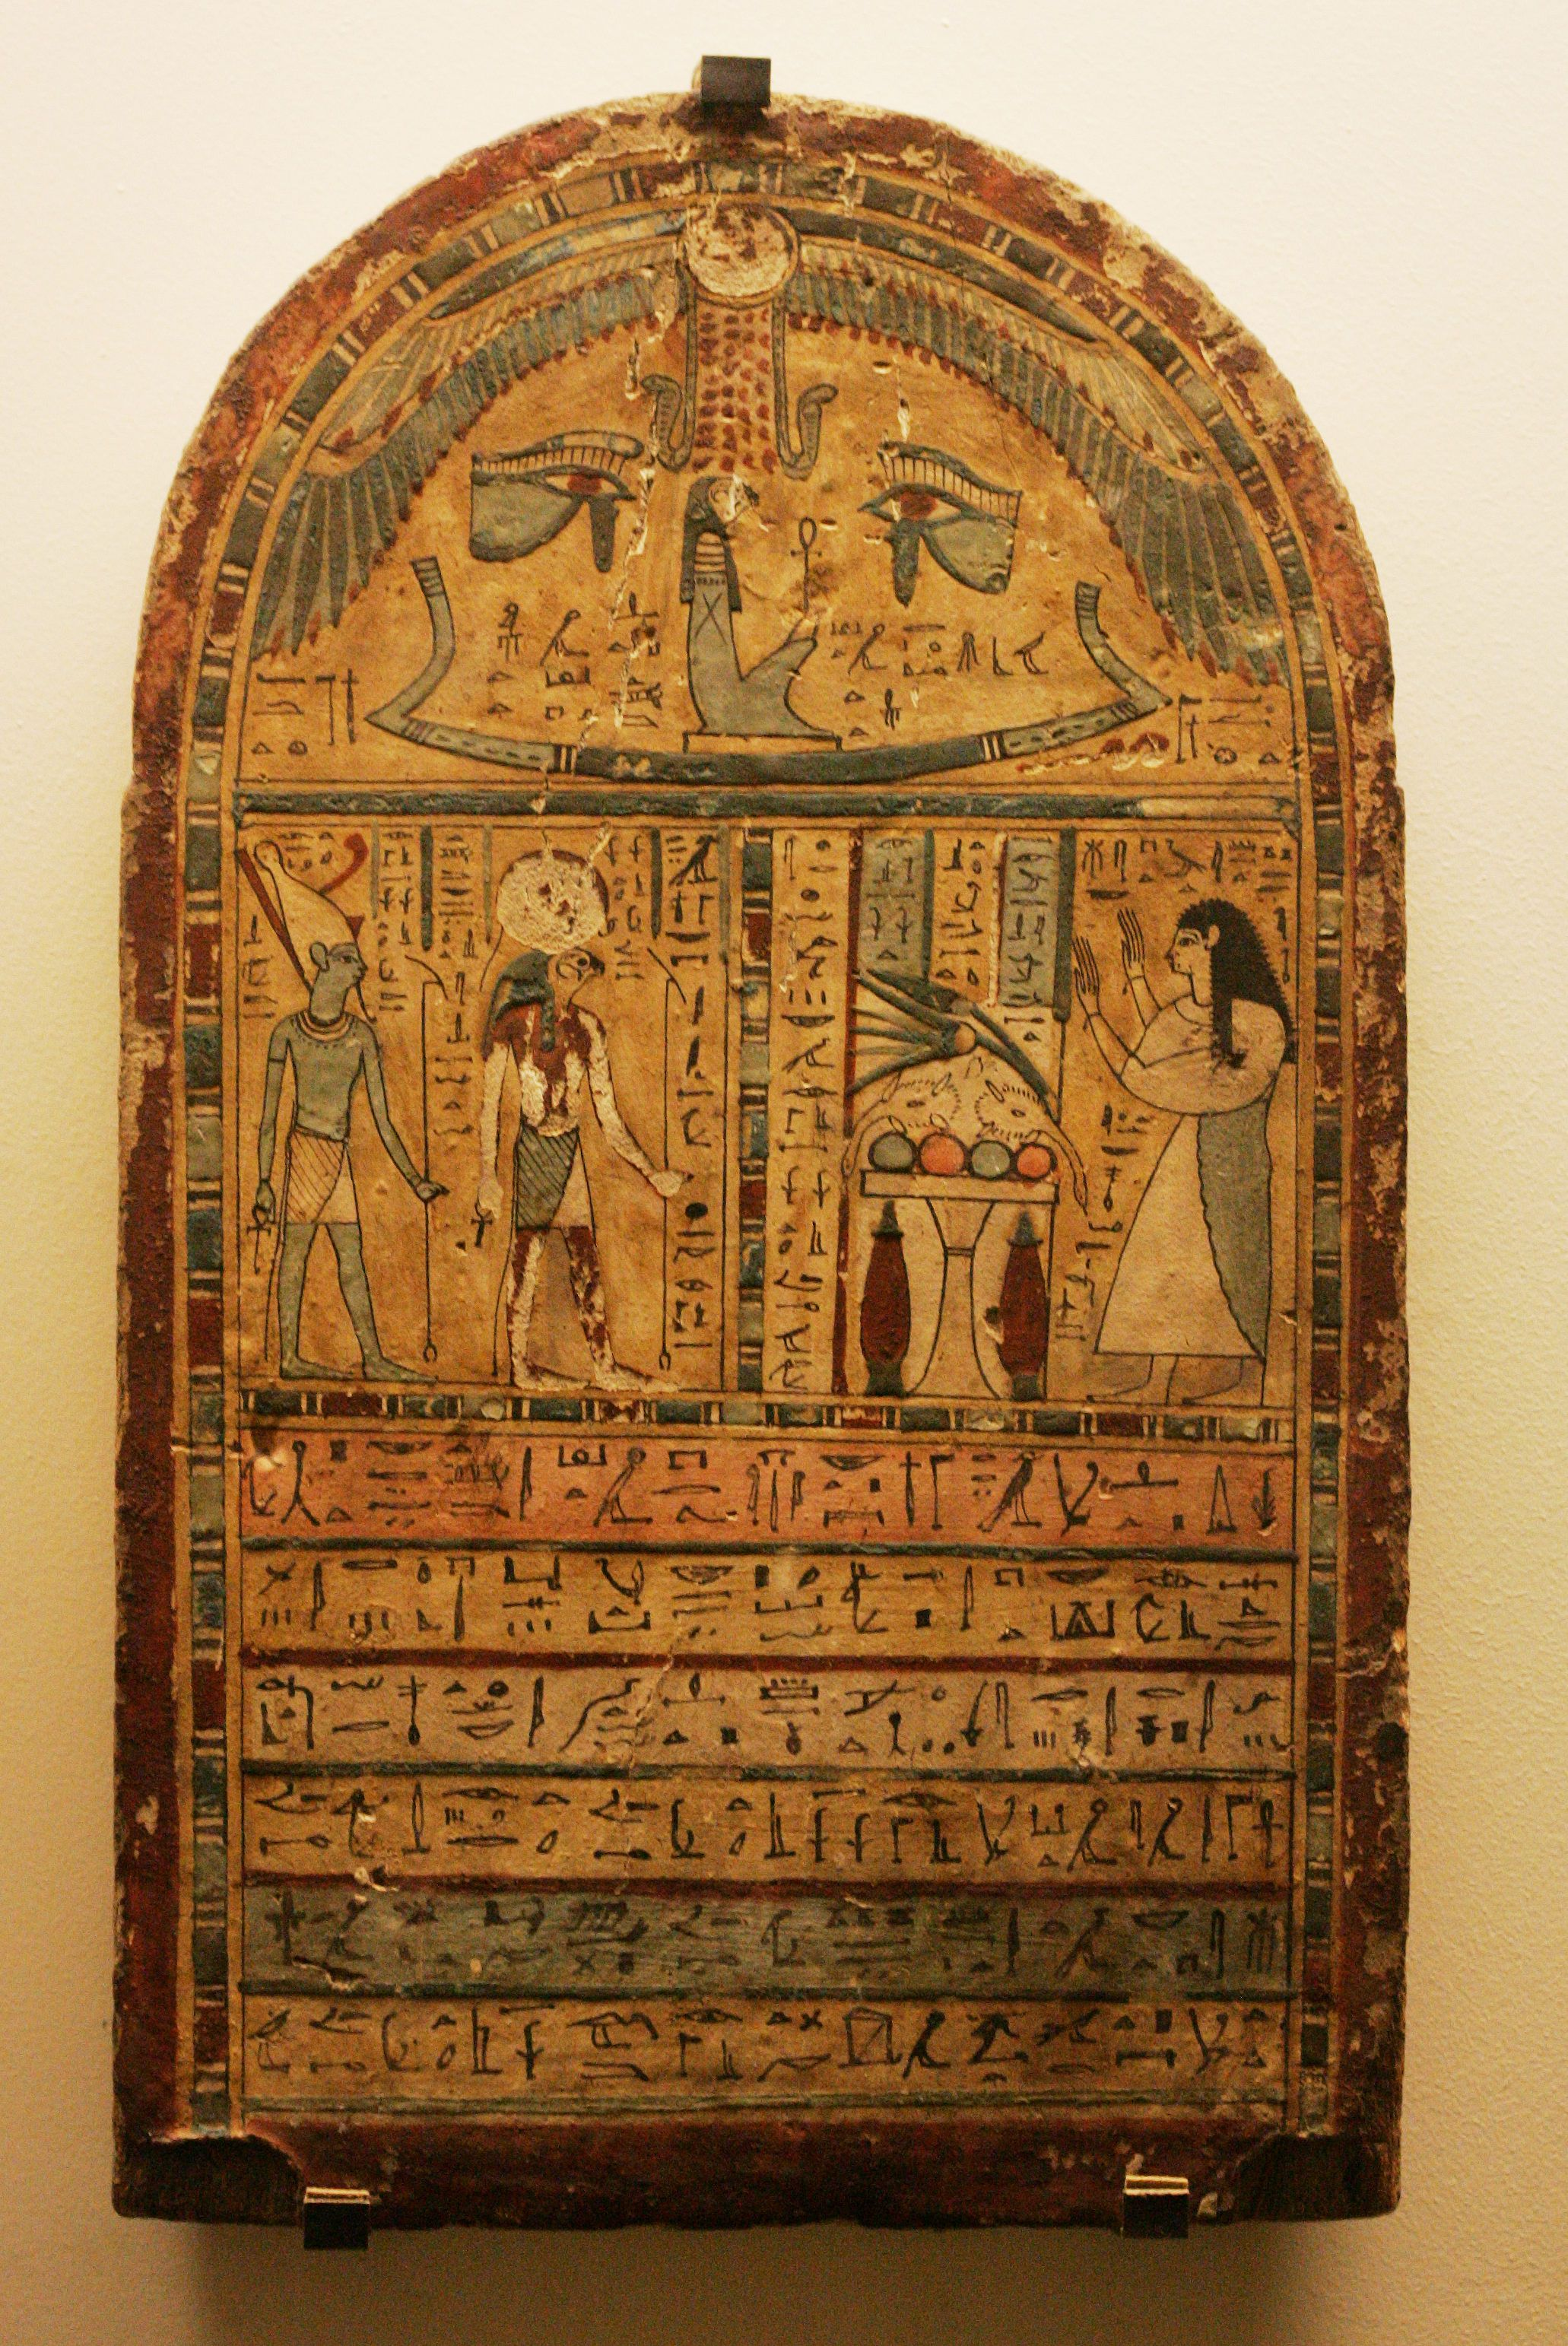 Arte Egipcio Wikipedia Louvre Eye Of Horus Steles Unknown Source From